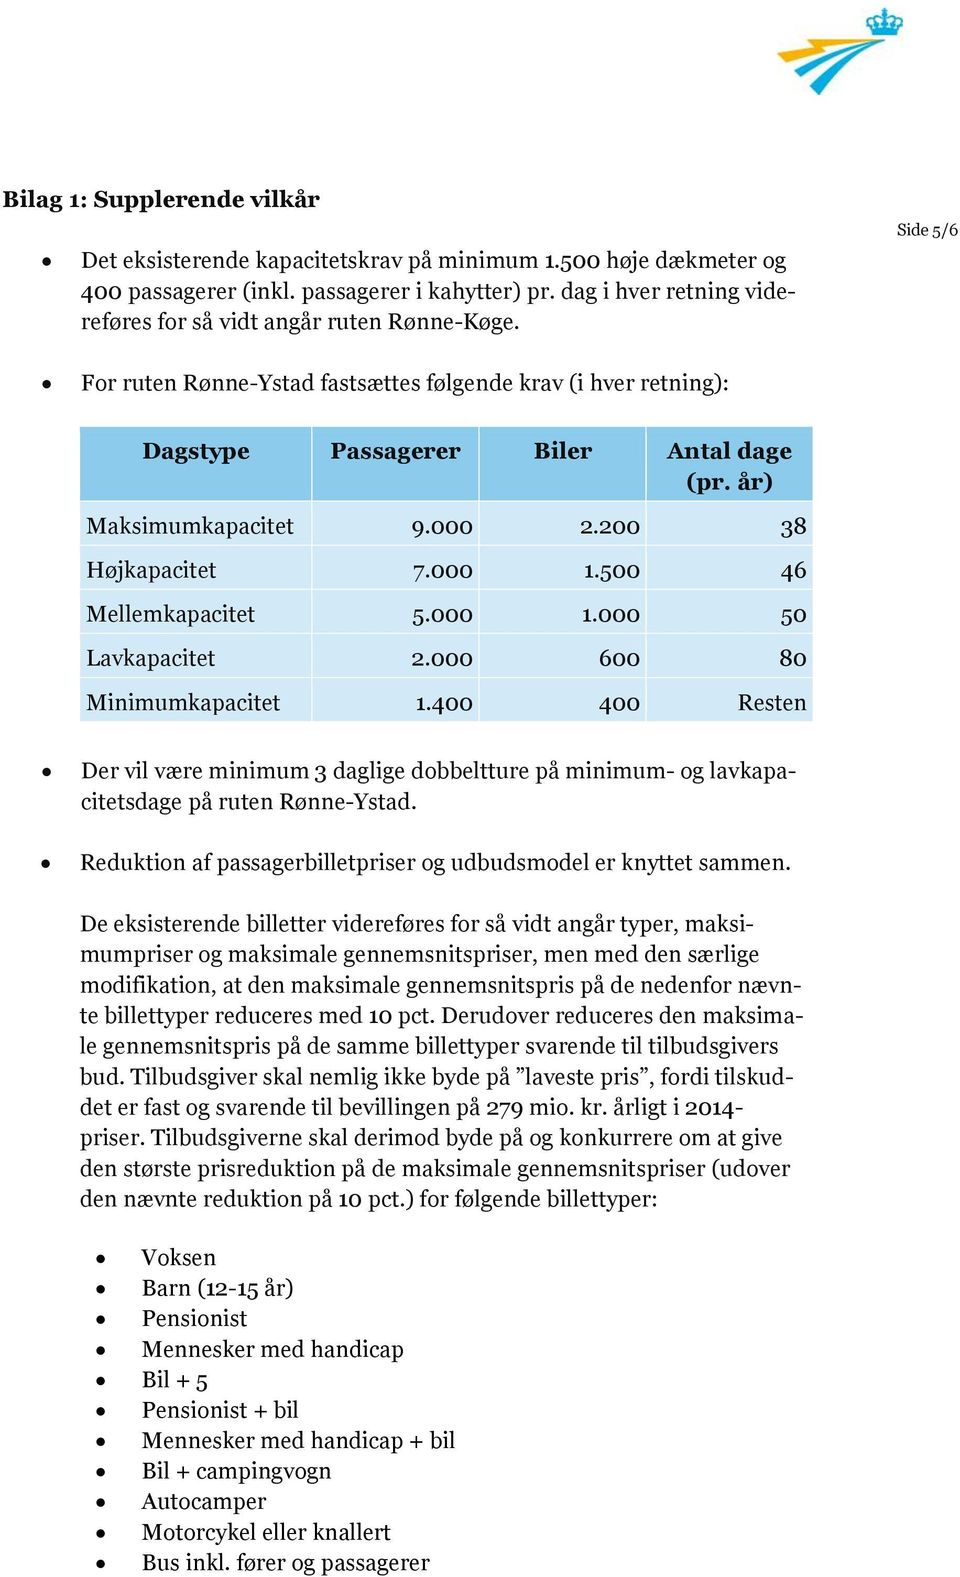 år) Maksimumkapacitet 9.000 2.200 38 Højkapacitet 7.000 1.500 46 Mellemkapacitet 5.000 1.000 50 Lavkapacitet 2.000 600 80 Minimumkapacitet 1.